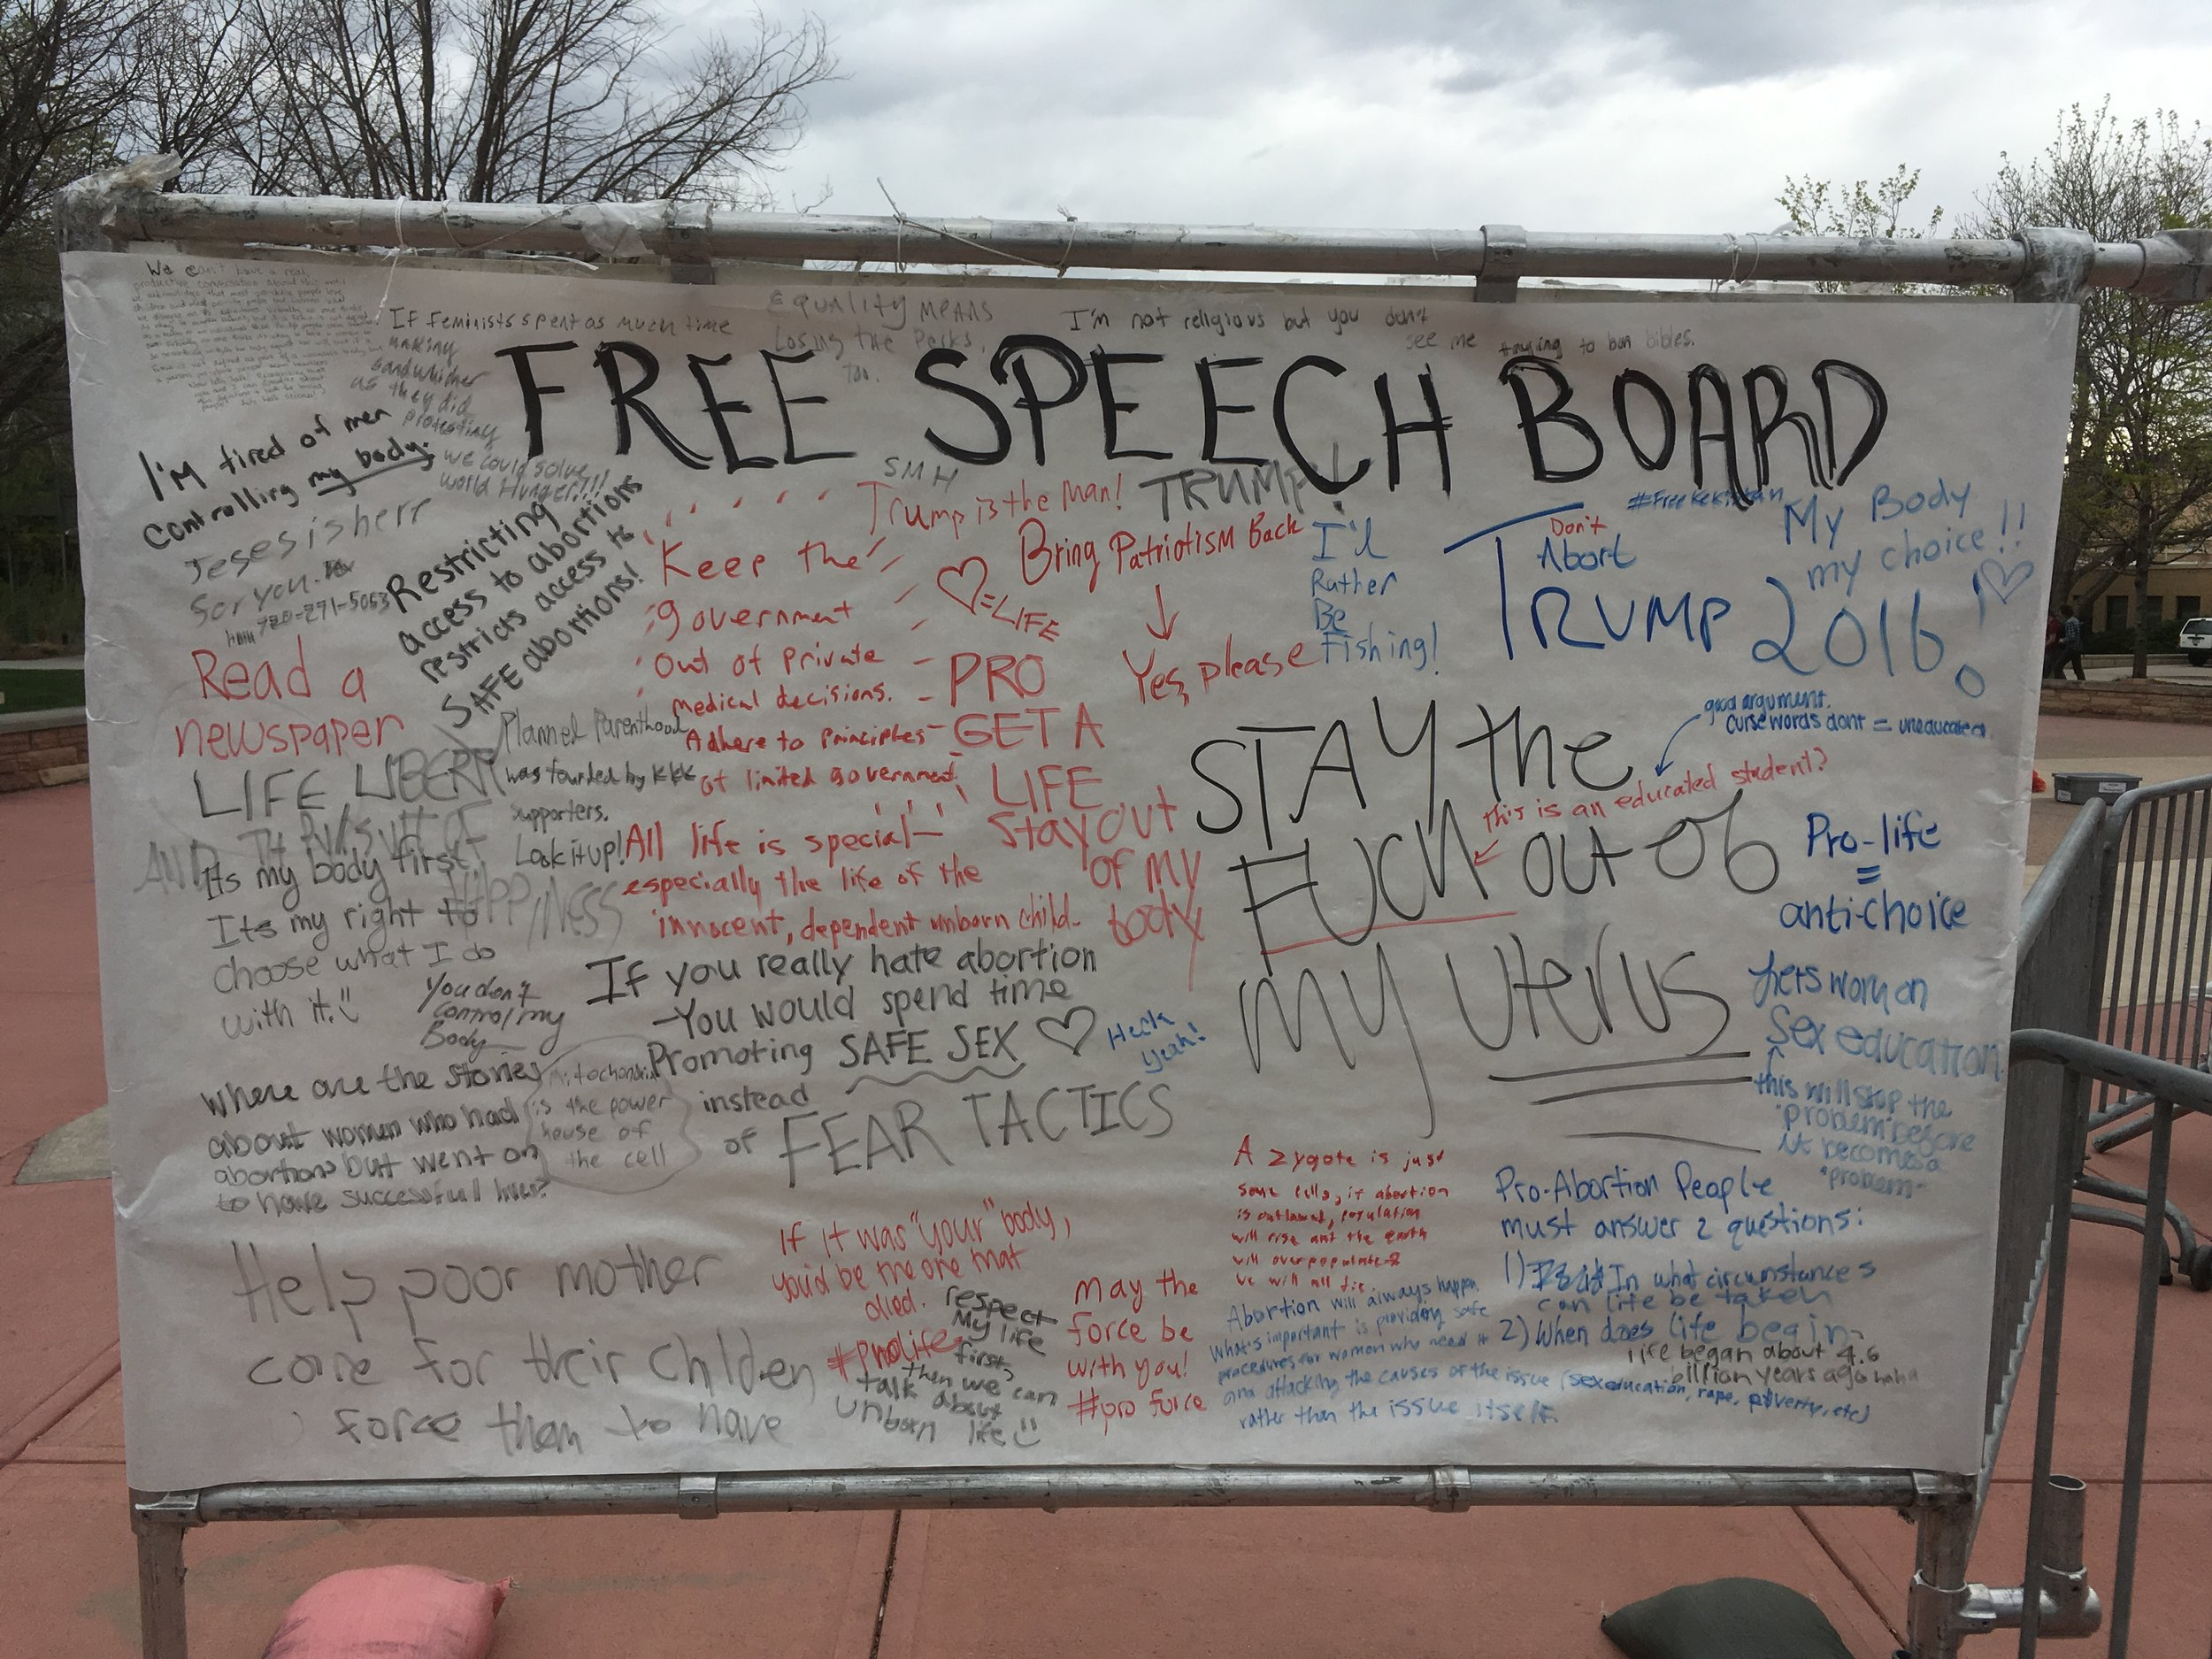 See the Featured Conversation Starter for this month (a small comment hidden in this free speech board) by clicking on the image above or the links below.